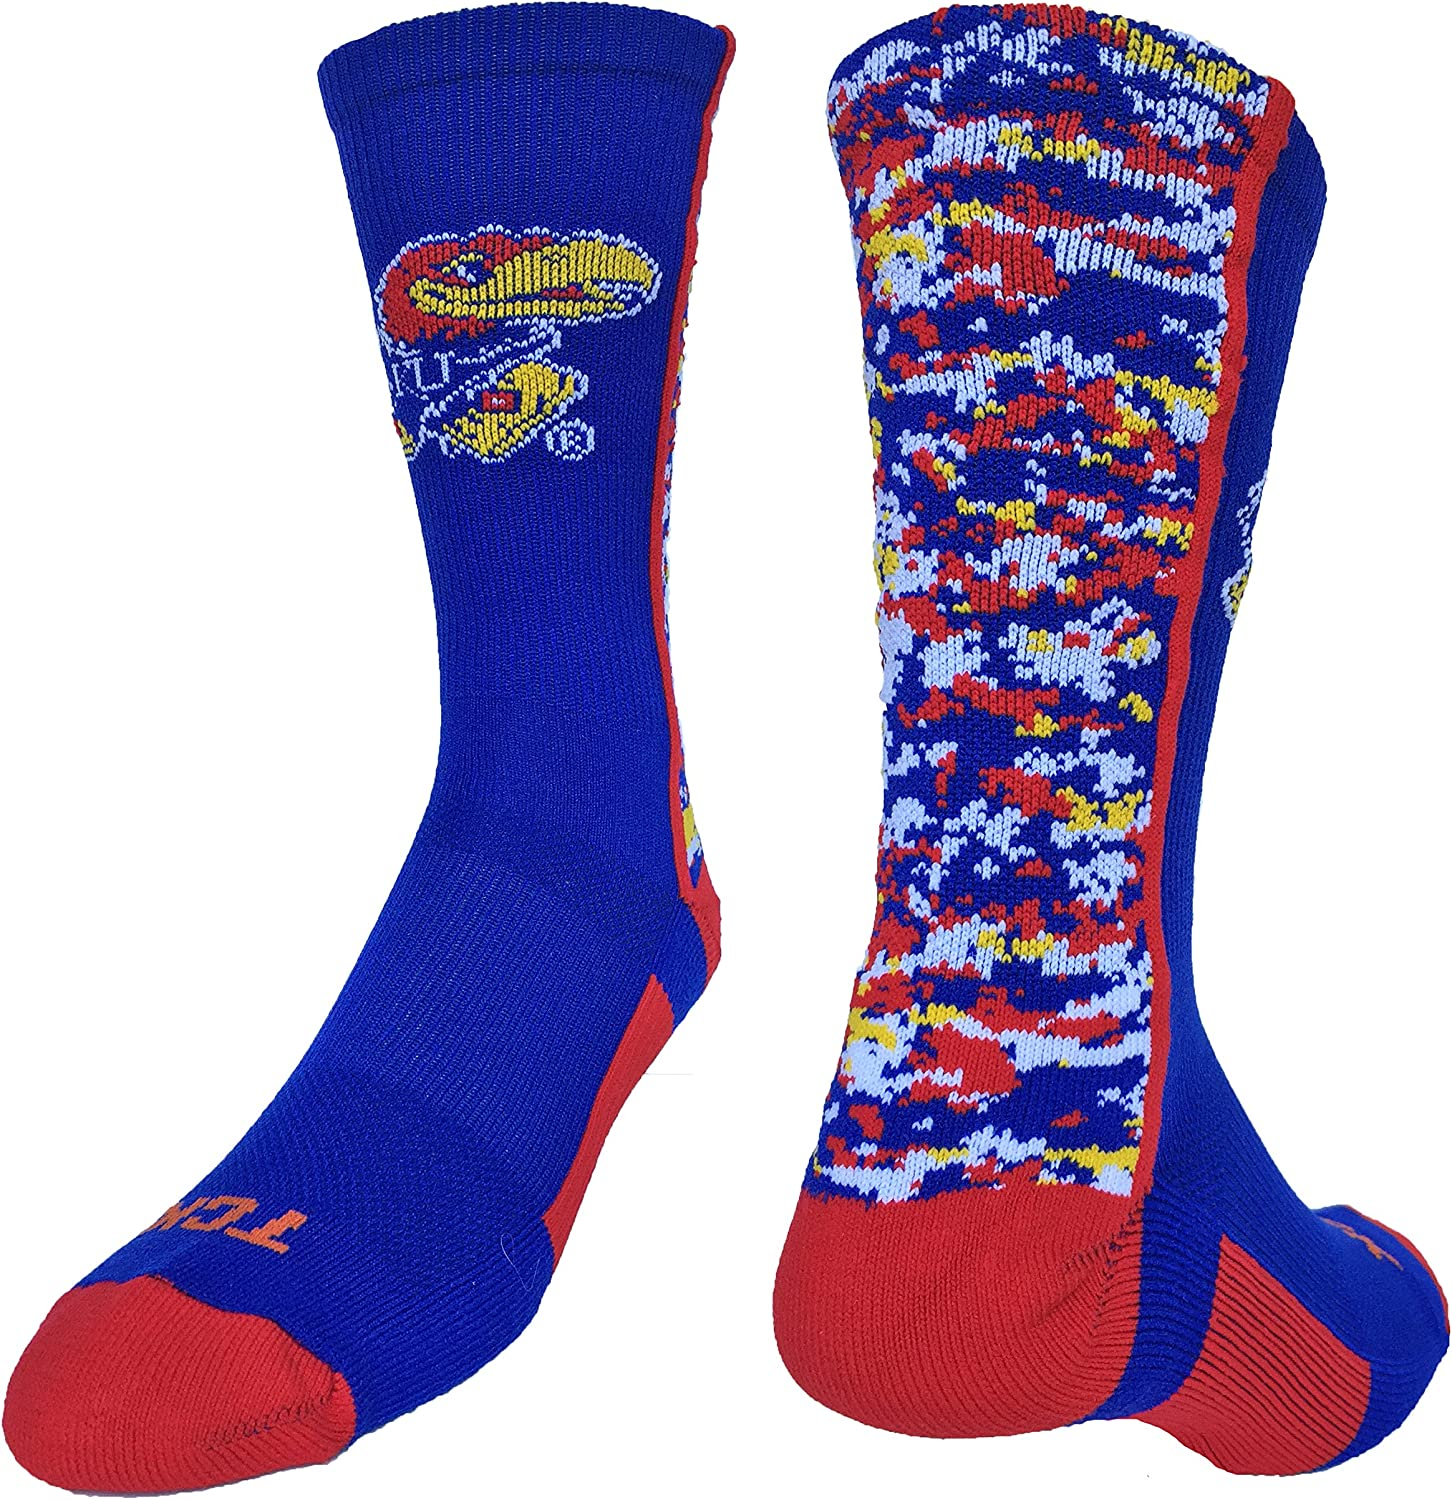 TCK Kansas Jayhawks Socks Digital Camo Crew